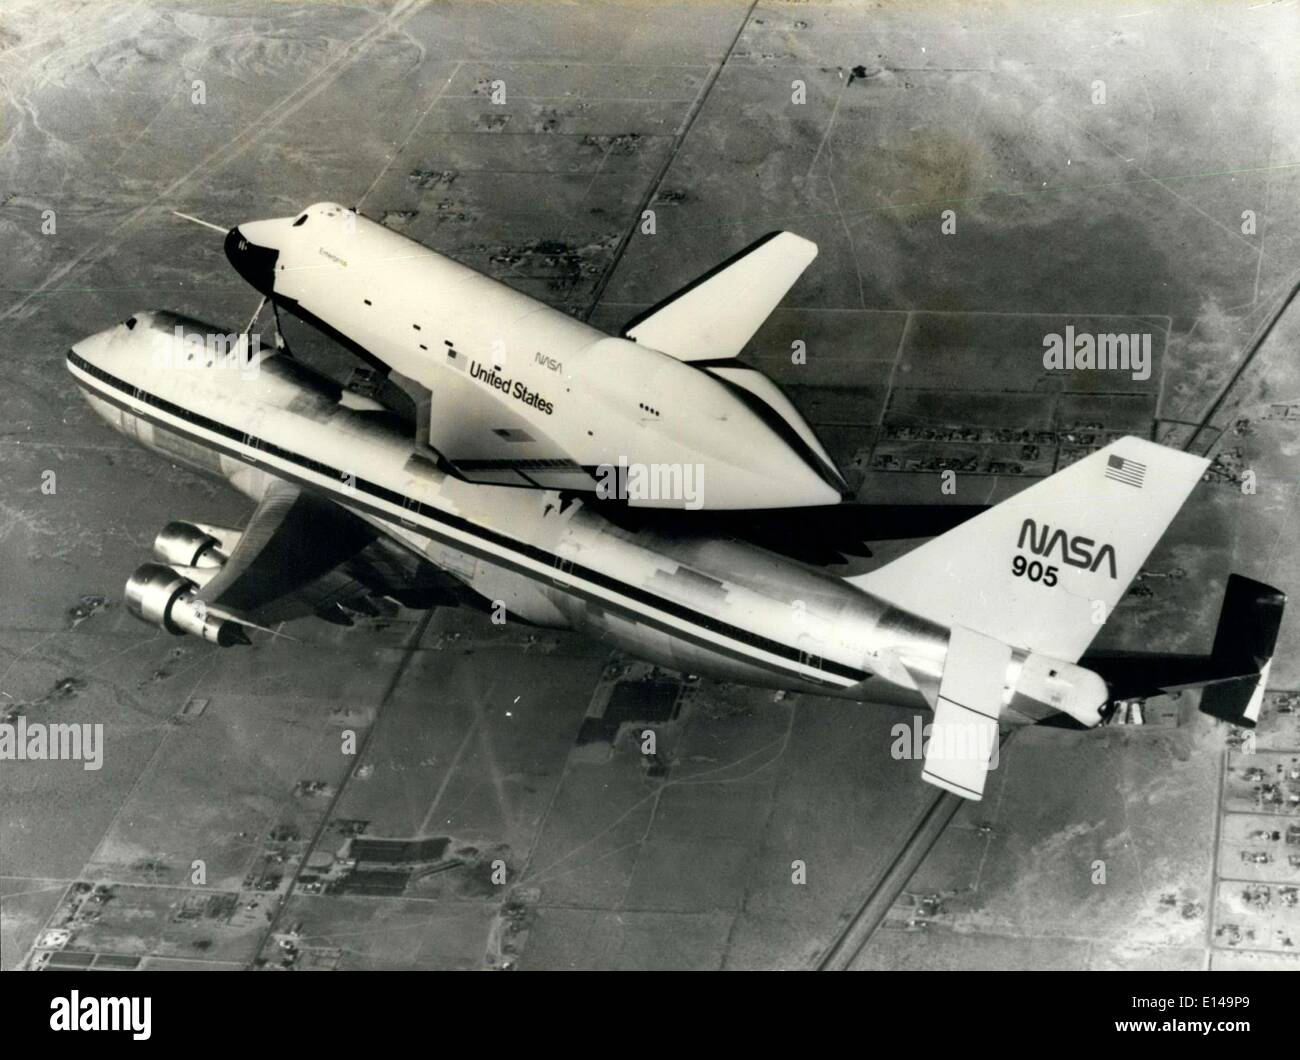 Apr. 17, 2012 - Final Test Flight for Space Shuttle: At the Dryden Flight Research Center, California the 5th final Stock Photo